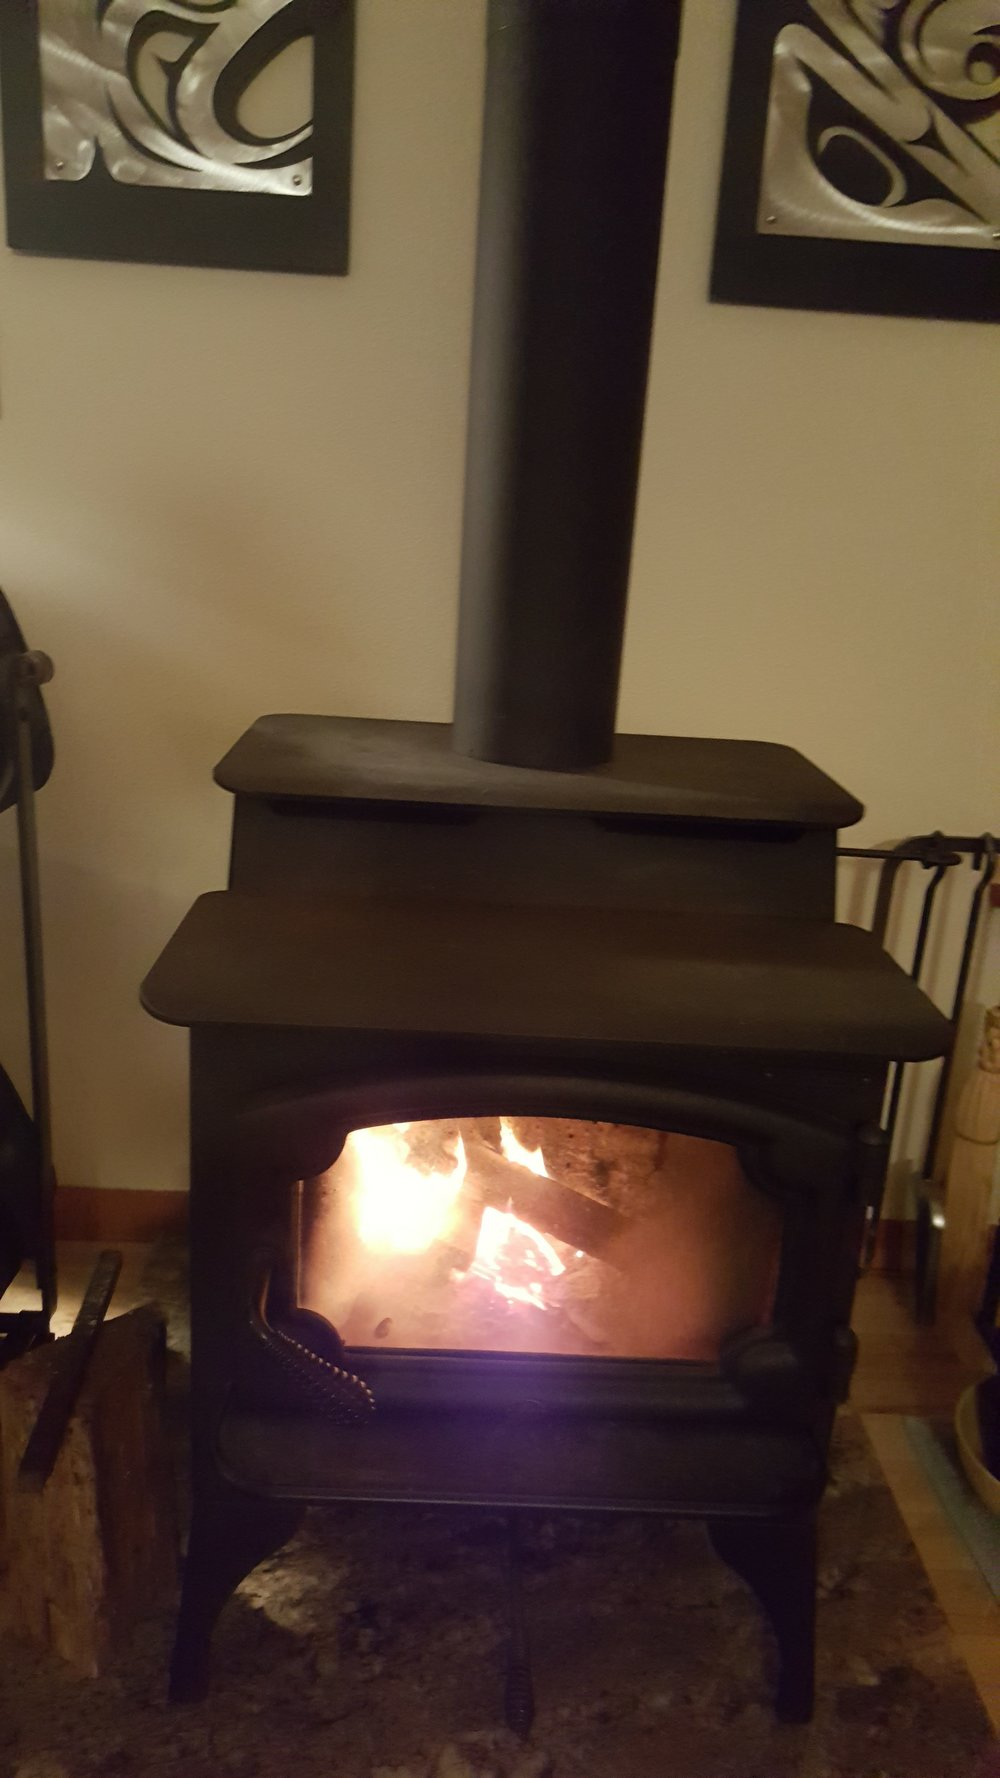 Wood stove is the epitome of Hygge